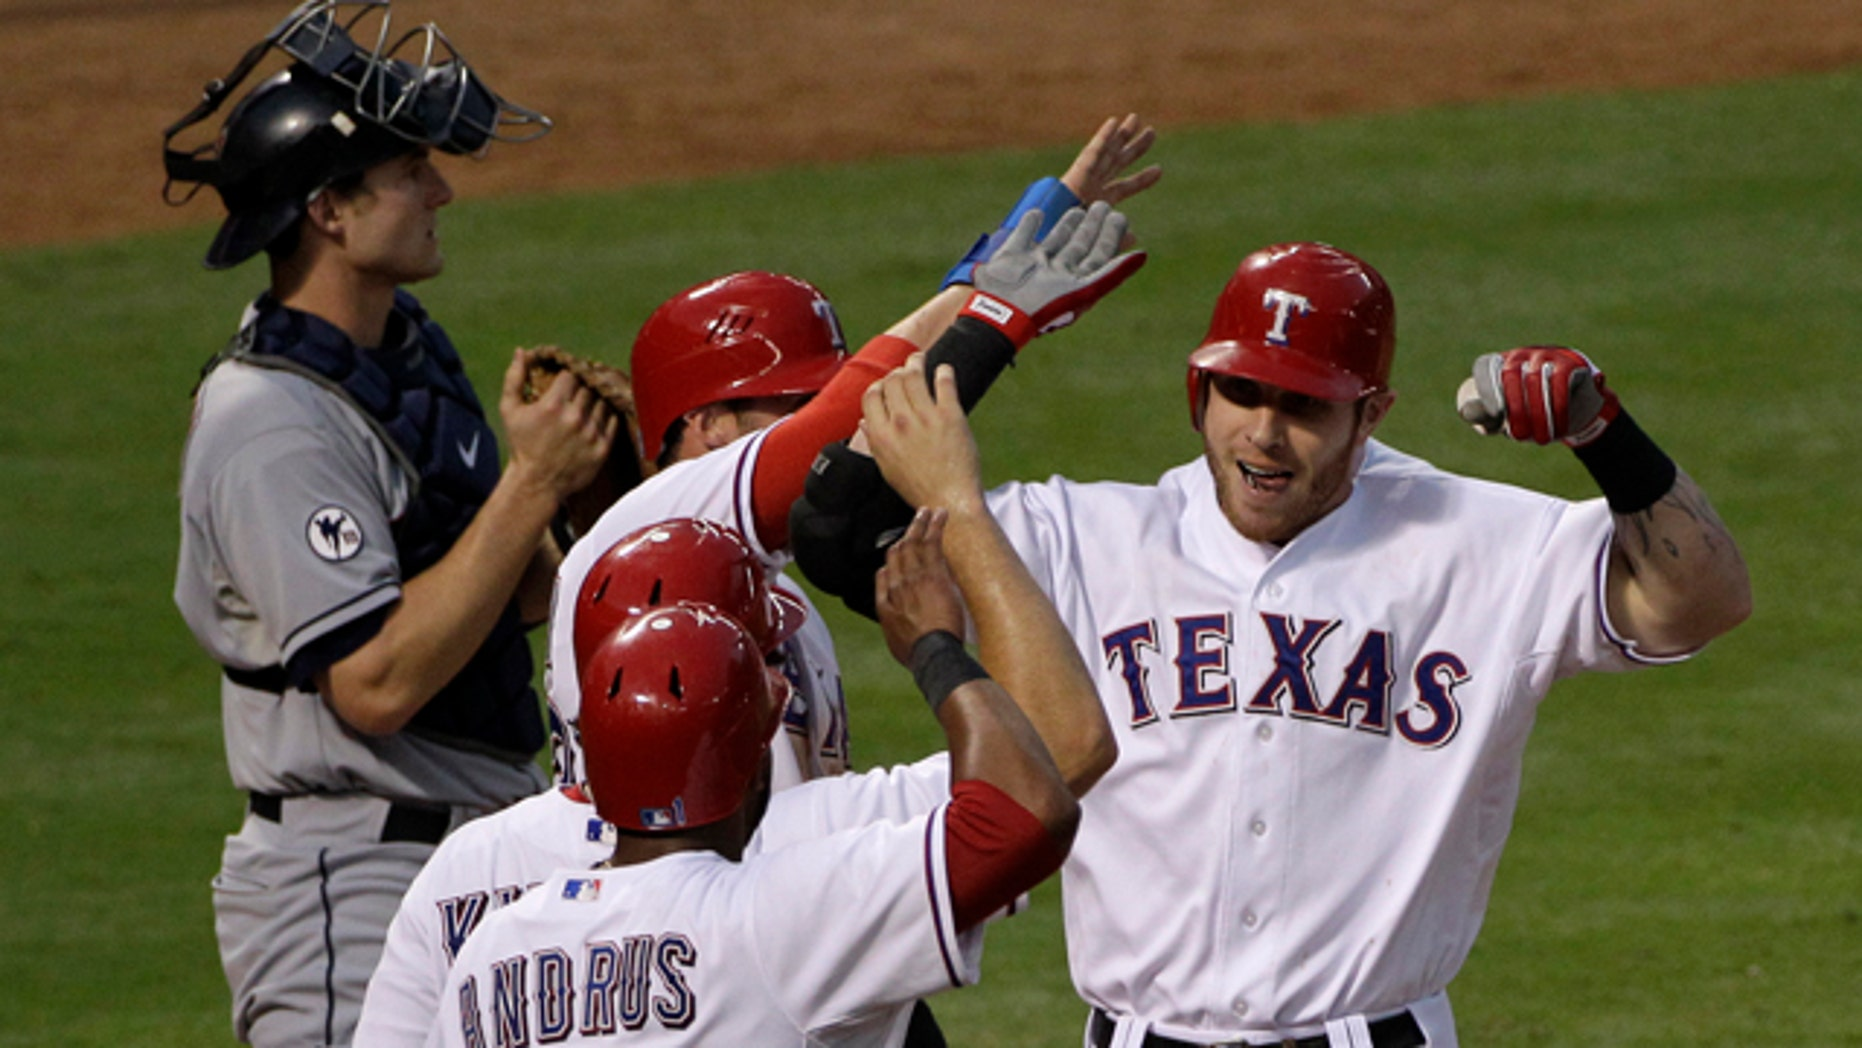 Sept. 14: Cleveland Indians catcher Lou Marson, left, stands by the plate as Texas Rangers' Josh Hamilton, right, is congratulated by teammates Elvis Andrus (1), Ian Kinsler, second from bottom, and Craig Gentry, third from bottom, following Hamilton's grand slam off Indians starting pitcher David Huff in the fourth inning of  a baseball game in Arlington, Texas.